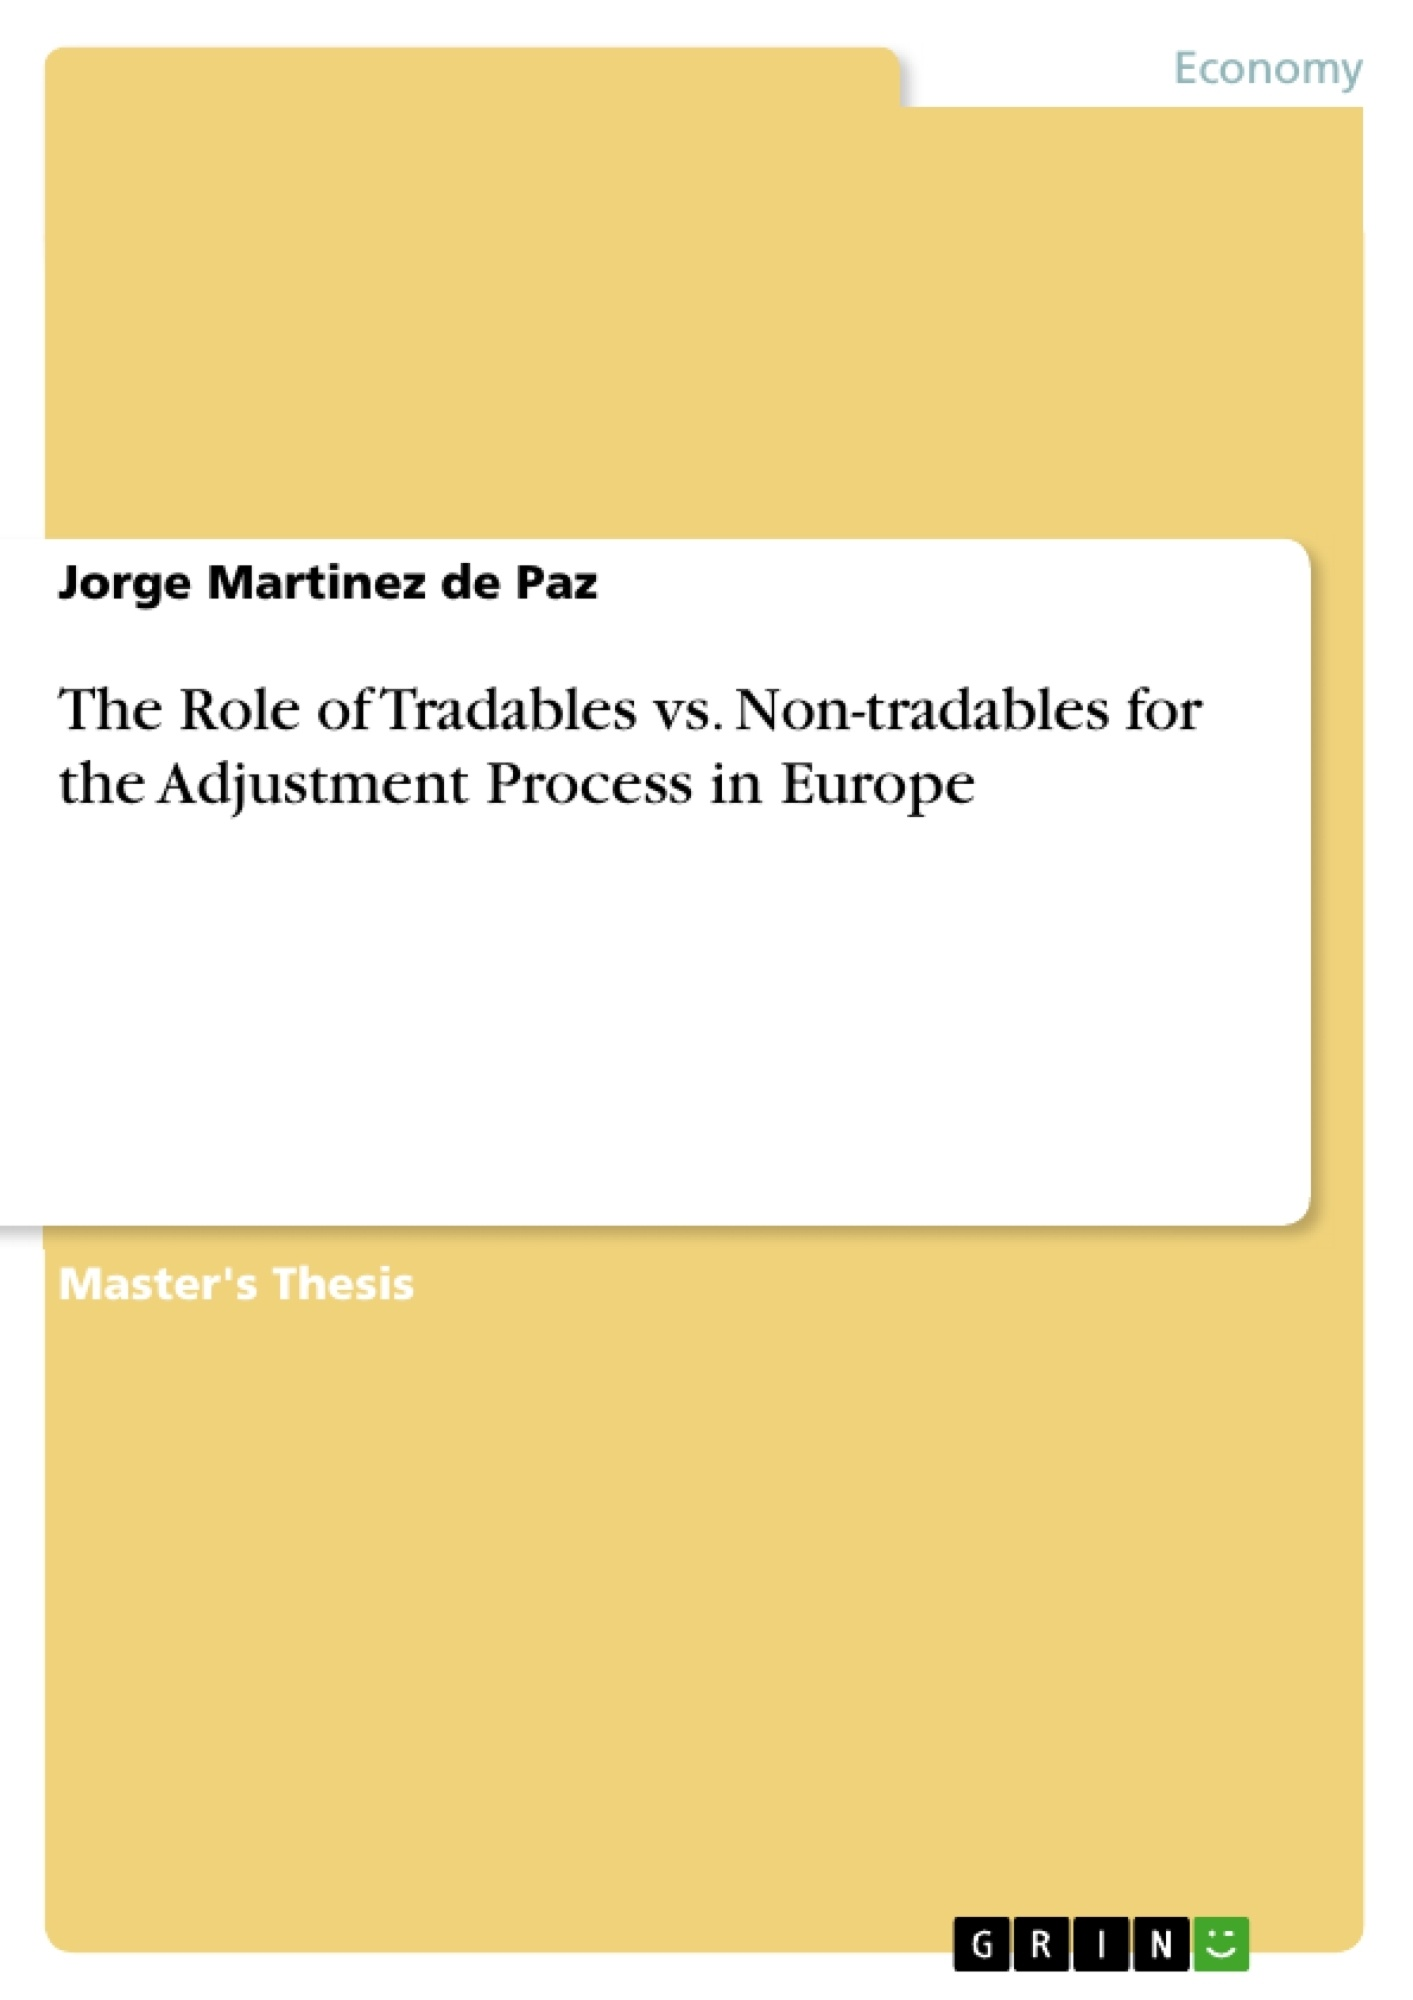 Title: The Role of Tradables vs. Non-tradables for the Adjustment Process in Europe